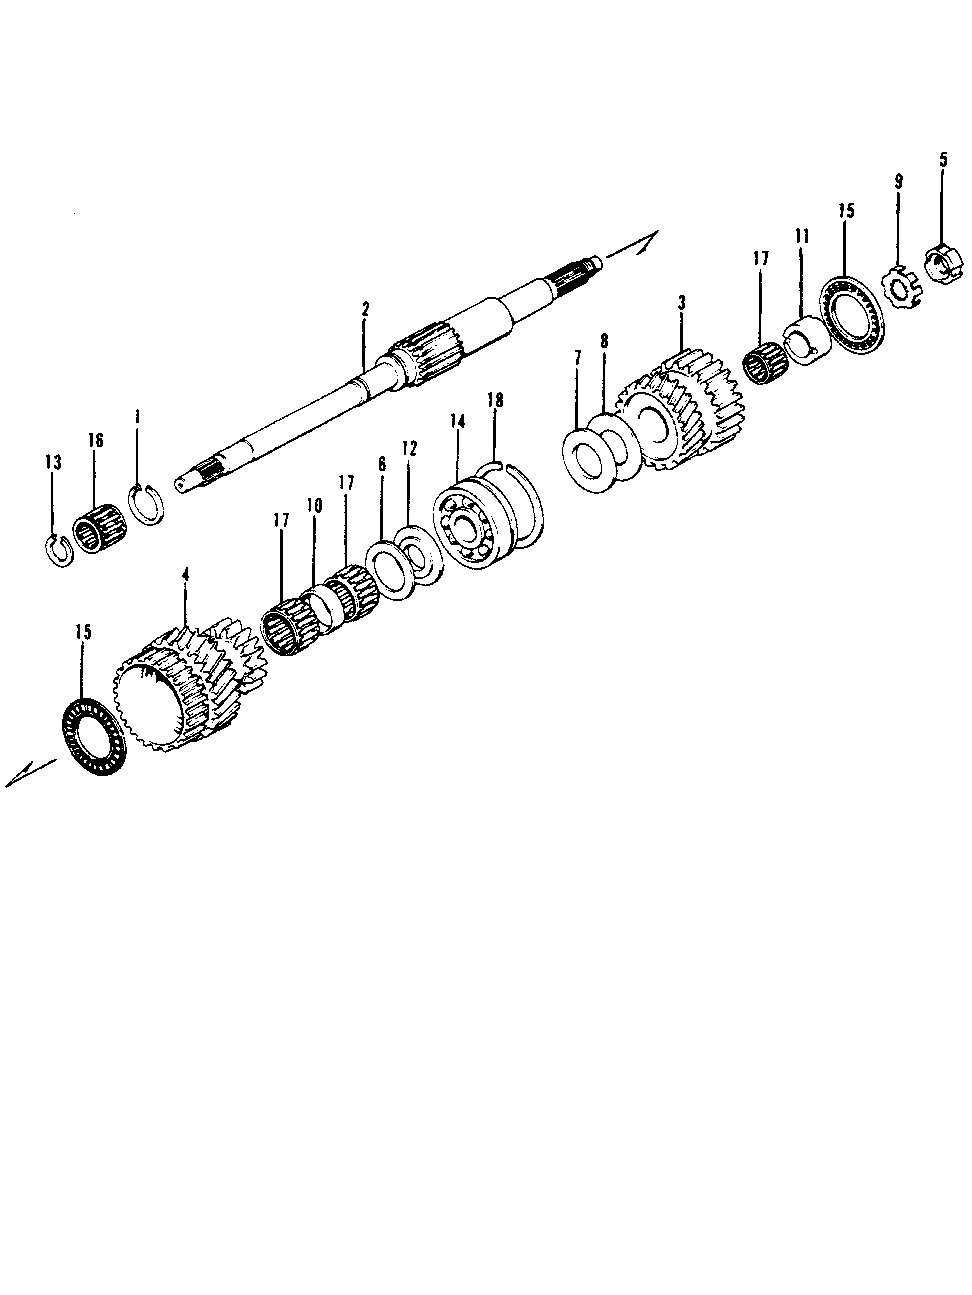 23411-639-010 - GEAR (LOWER)